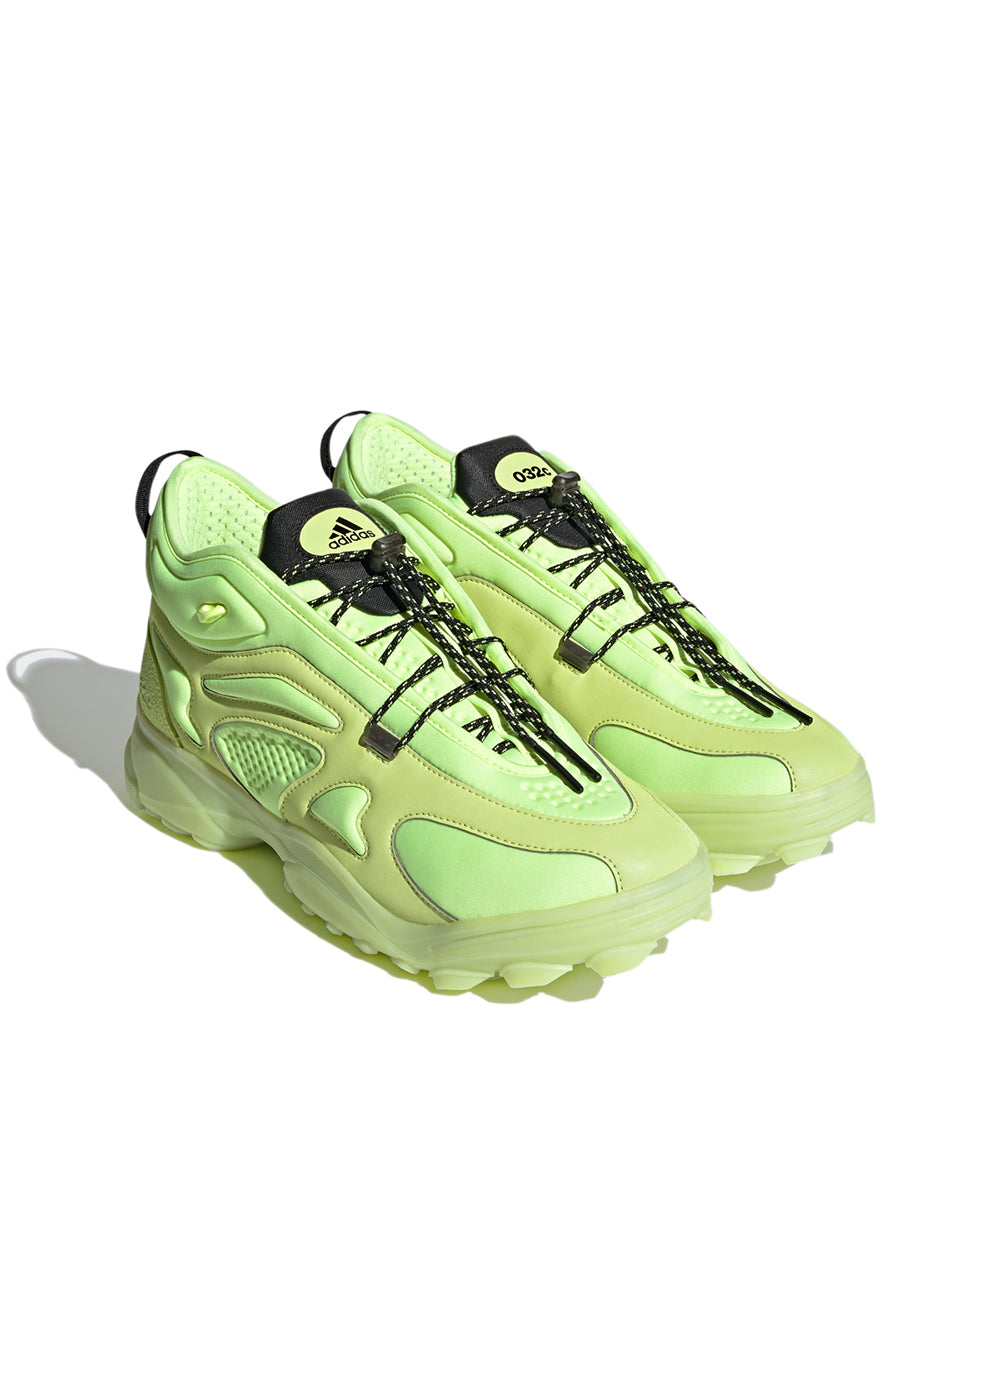 adidas by 032c GSG TR Neon   032c Store